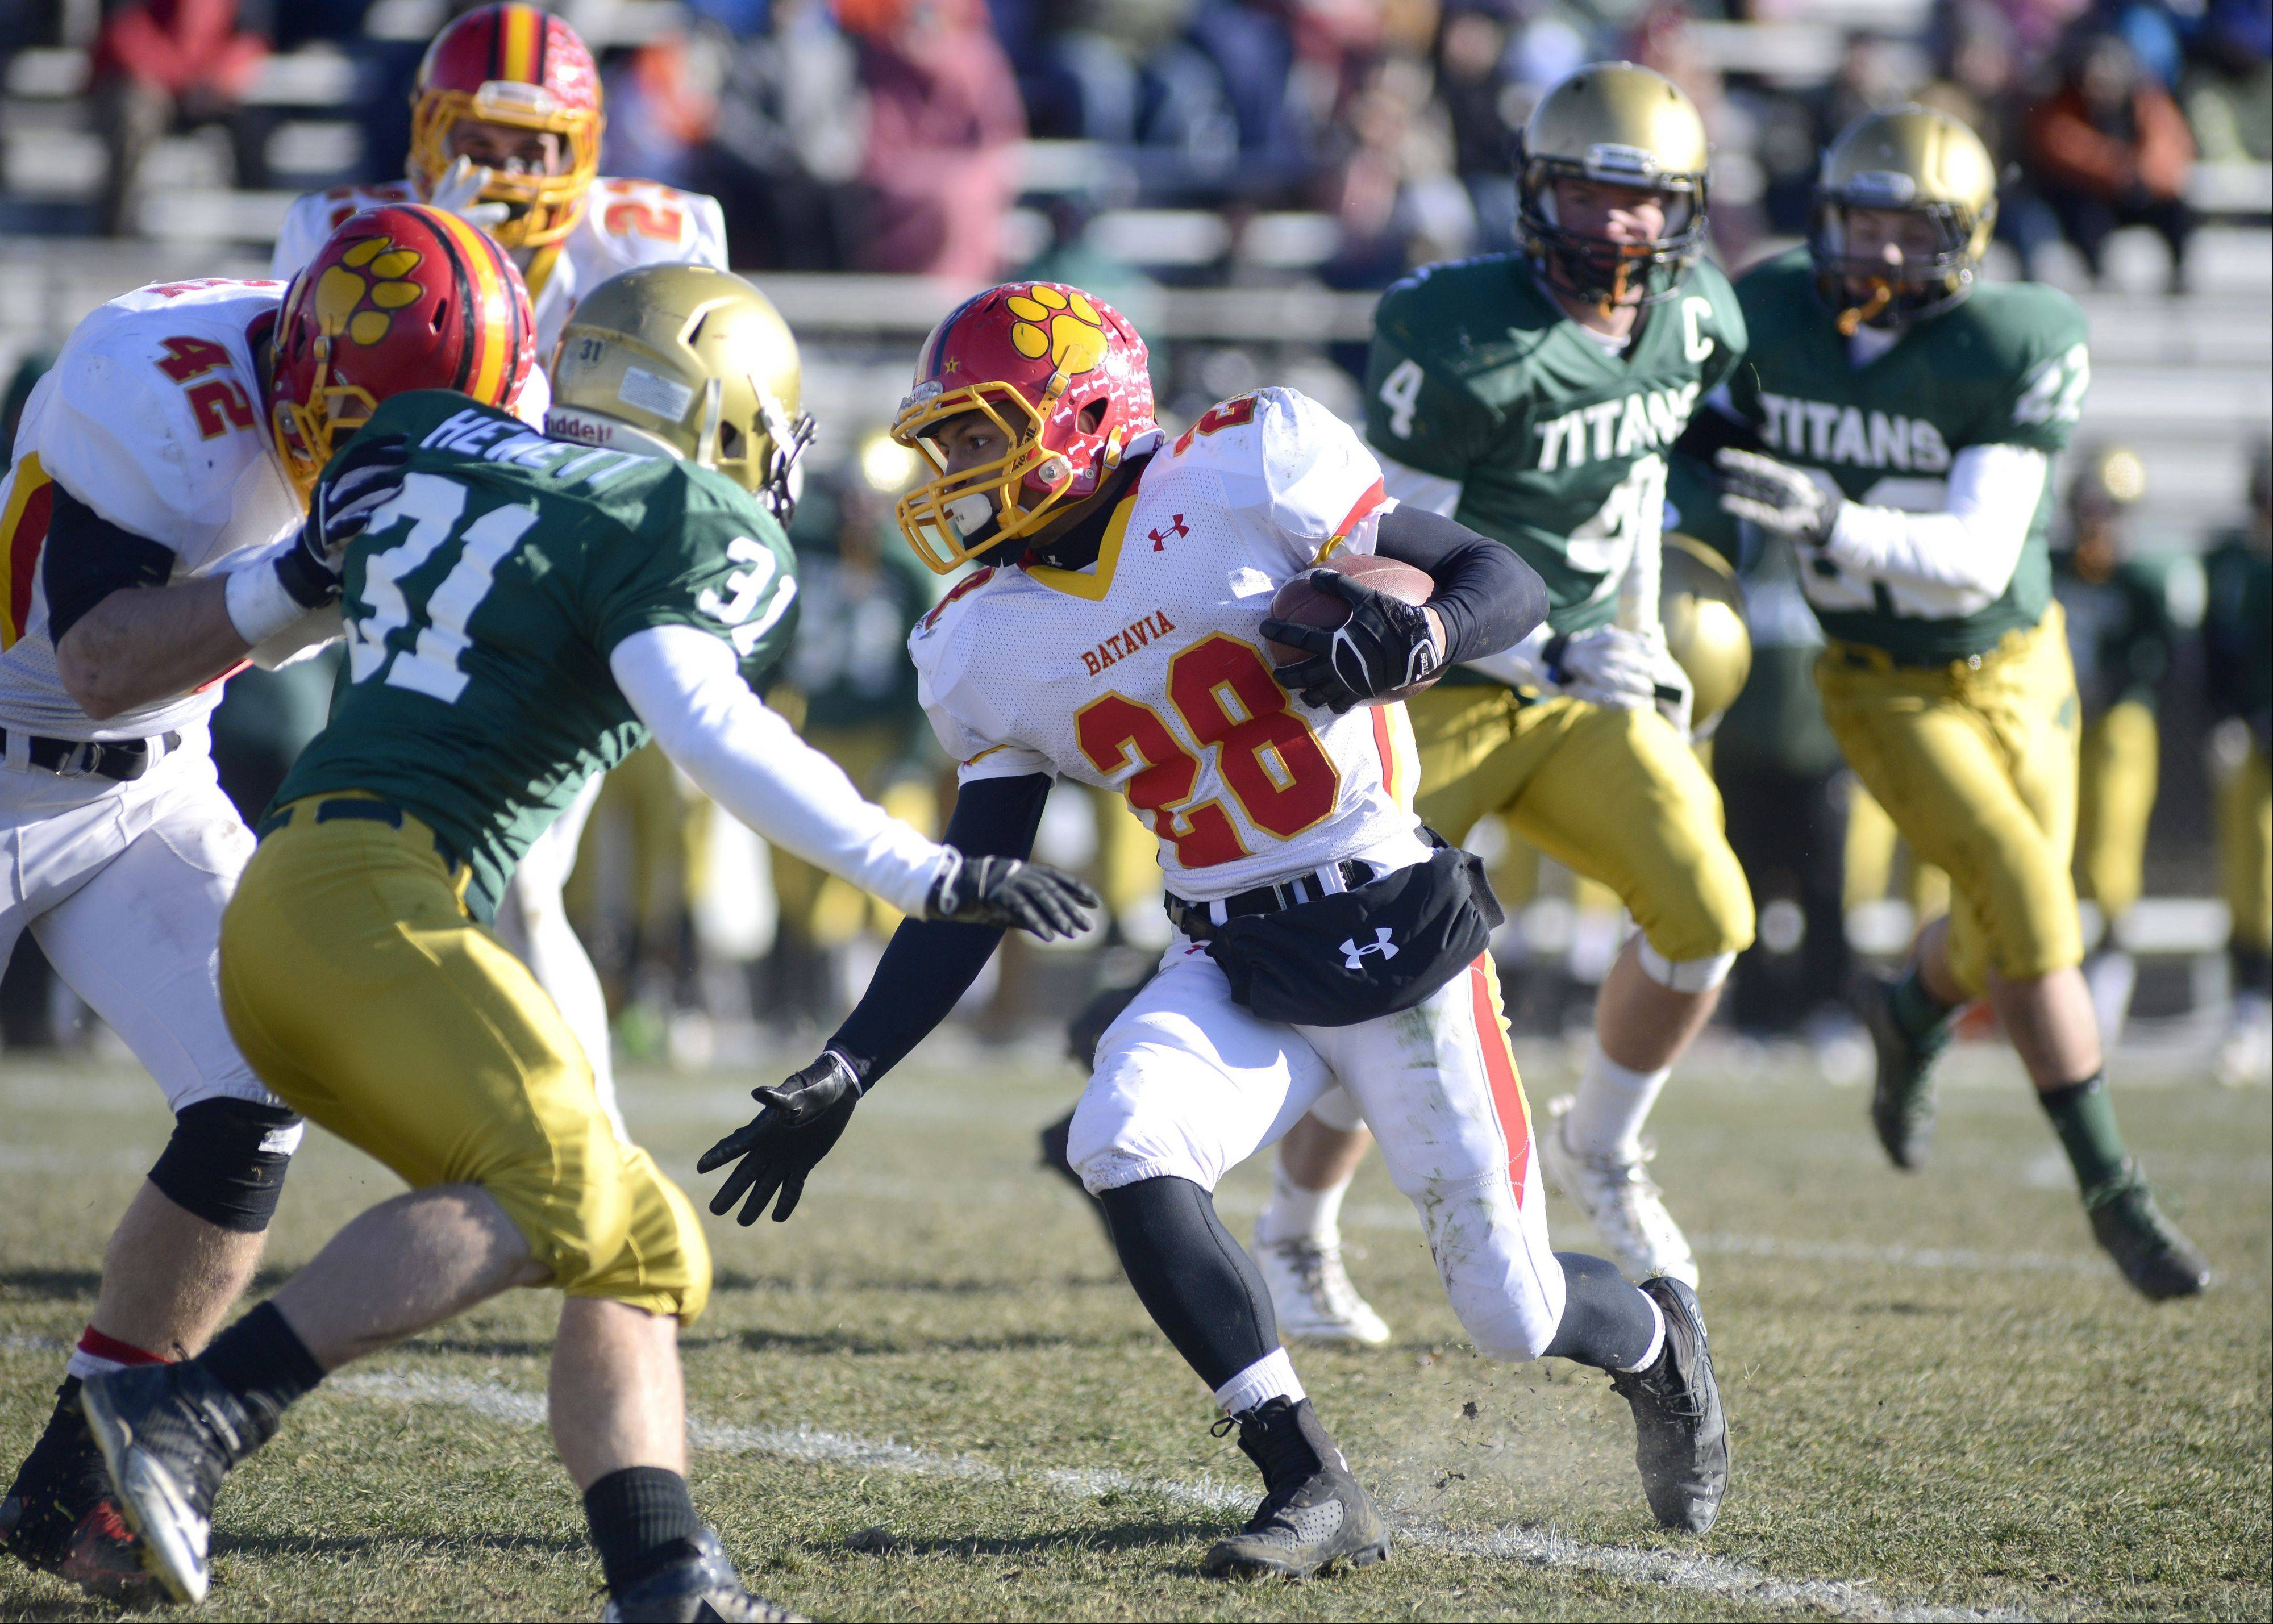 Batavia's Anthony Scaccia looks for a pocket around Rockford Boylan's Steven Hewett as teammate Kevin Green pushes him out of his way in the first quarter of the Class 6A semifinal game on Saturday, November 23.